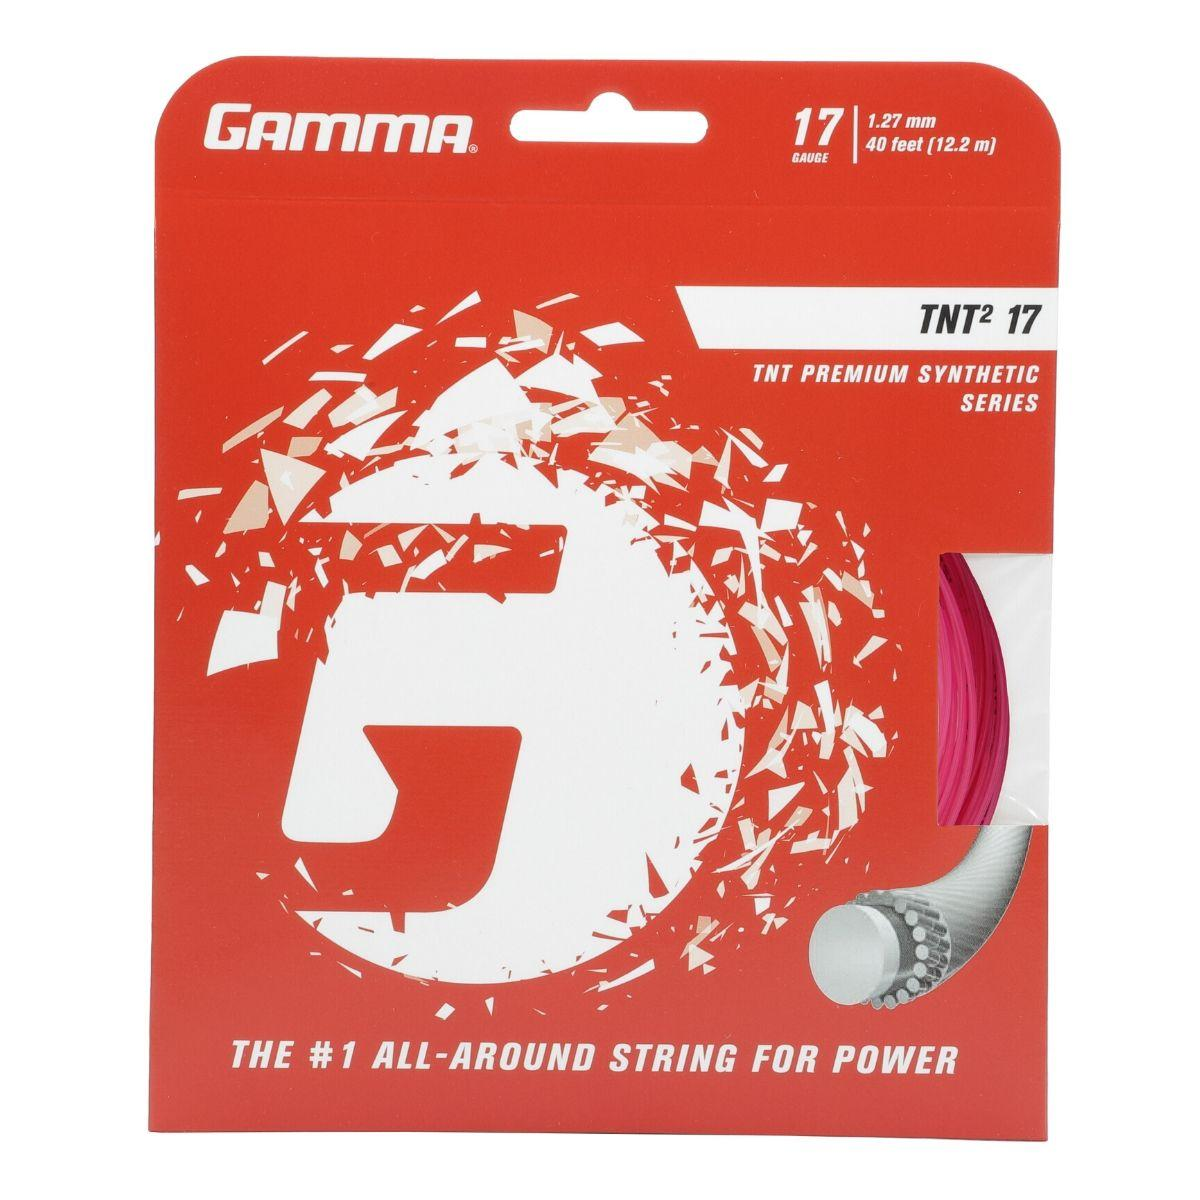 Spin 17 Gamma Sports AMP Jet Tennis Racket String Polyester Series- Twisted Ribbed Shape Delivers Maximum Ball Bite or 18 Gauge Black, Blue, Lime 16L and Control with Greater Ball Pocketing